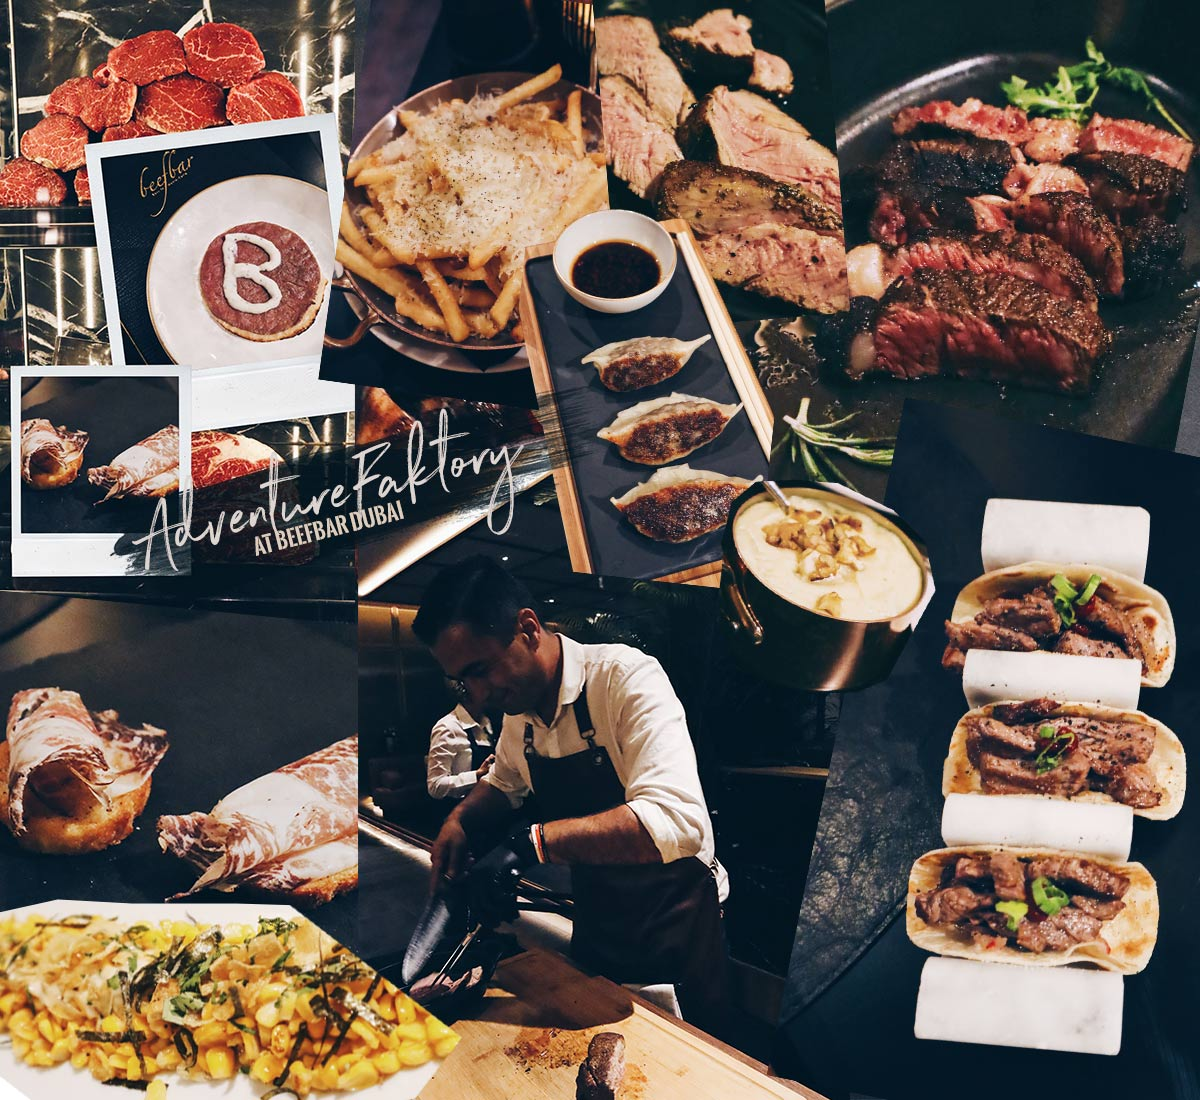 If you love meat, you can't miss a visit to Beefbar Dubai